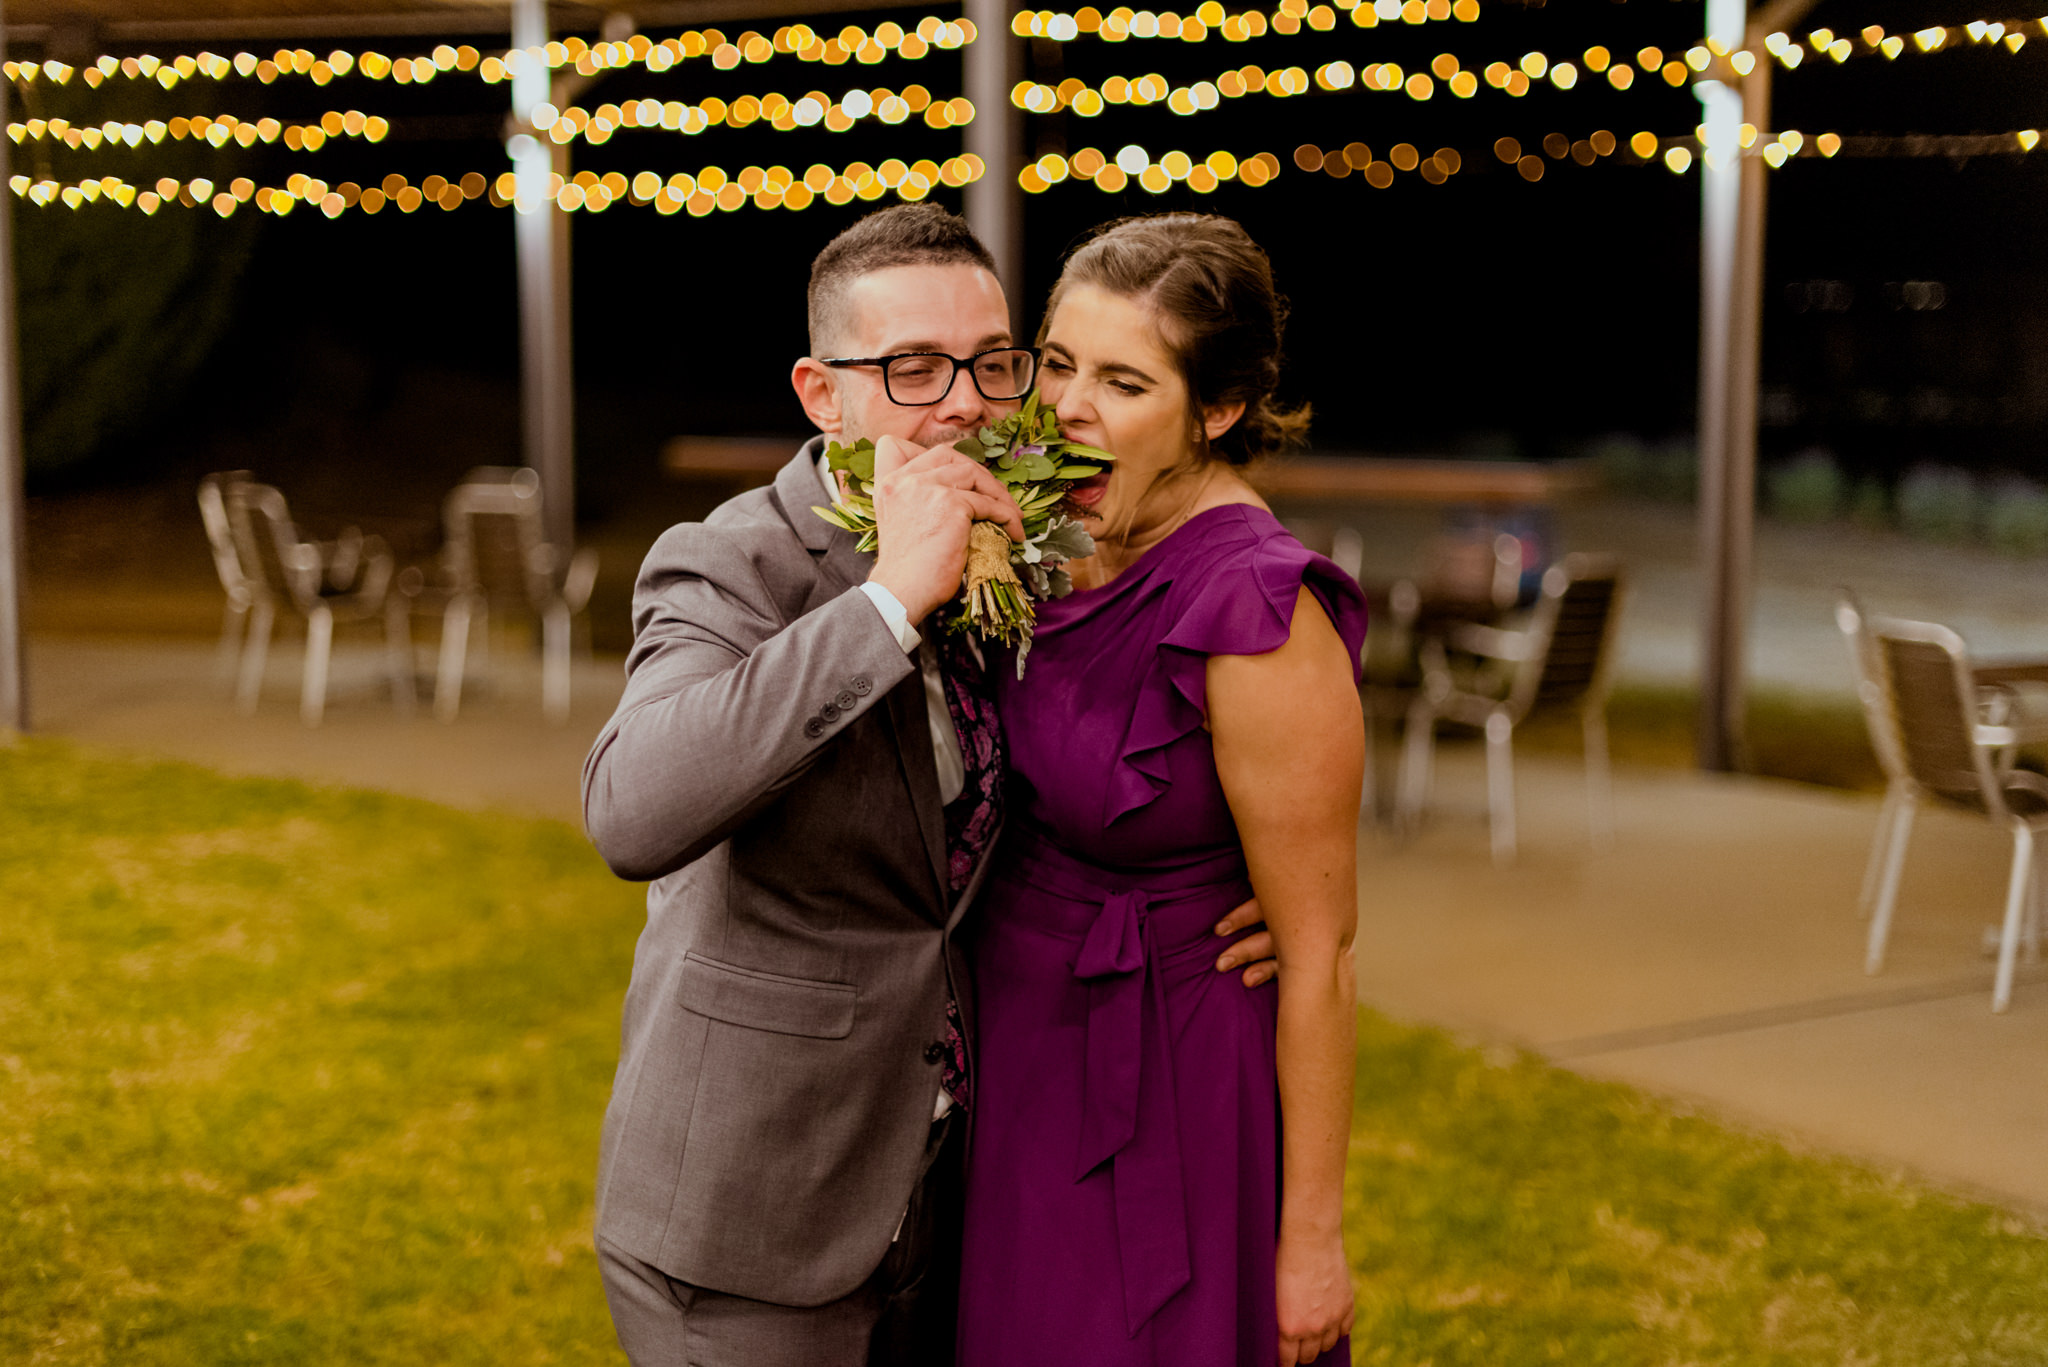 A man and a woman hug and pretend to eat a wedding bouquet